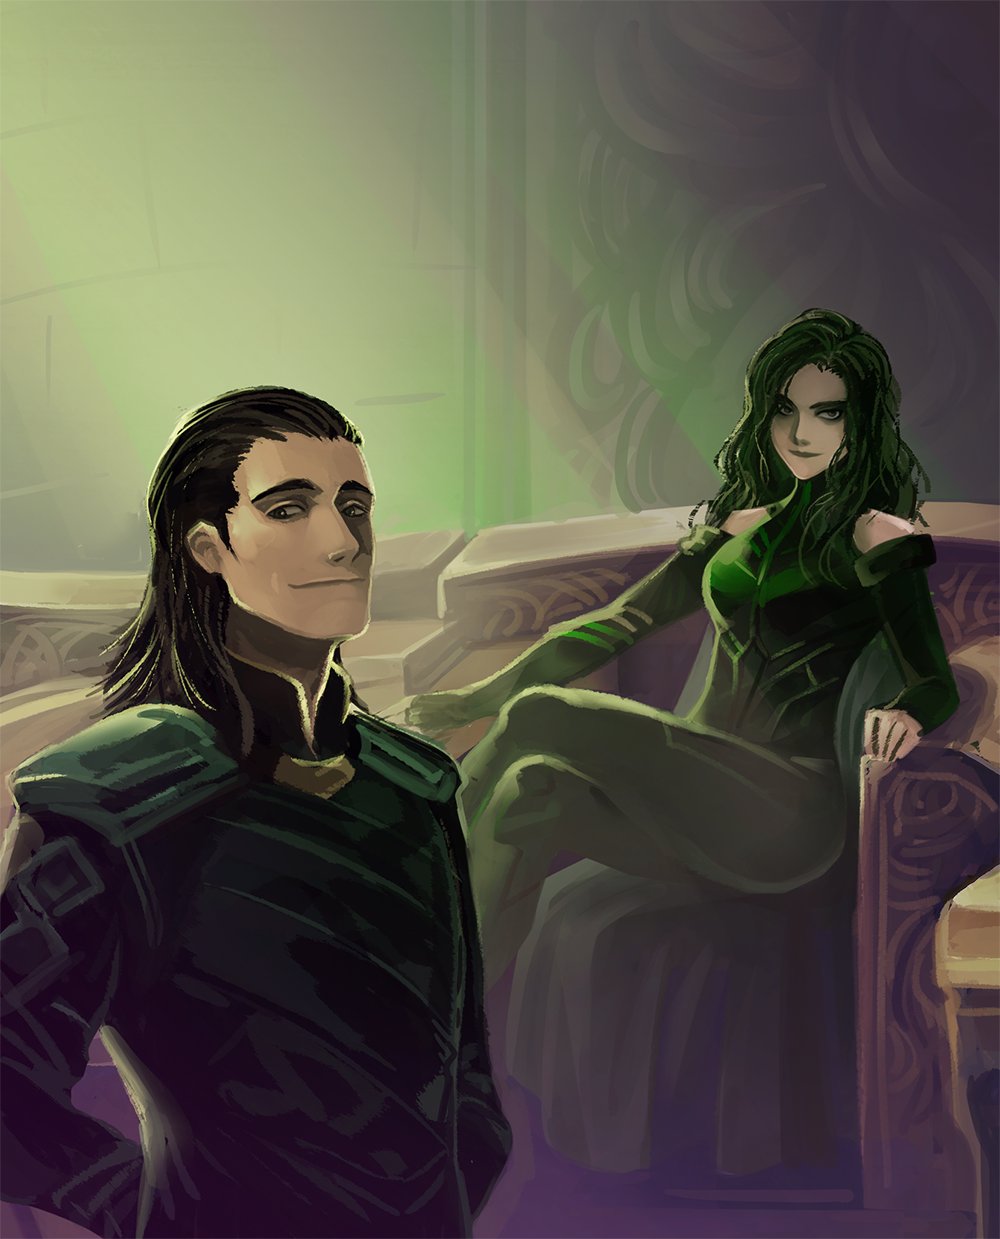 https://orig00.deviantart.net/6e1e/f/2017/316/d/e/thor_3_ragnarok___hela_and_loki_by_mushstone-dbting0.png